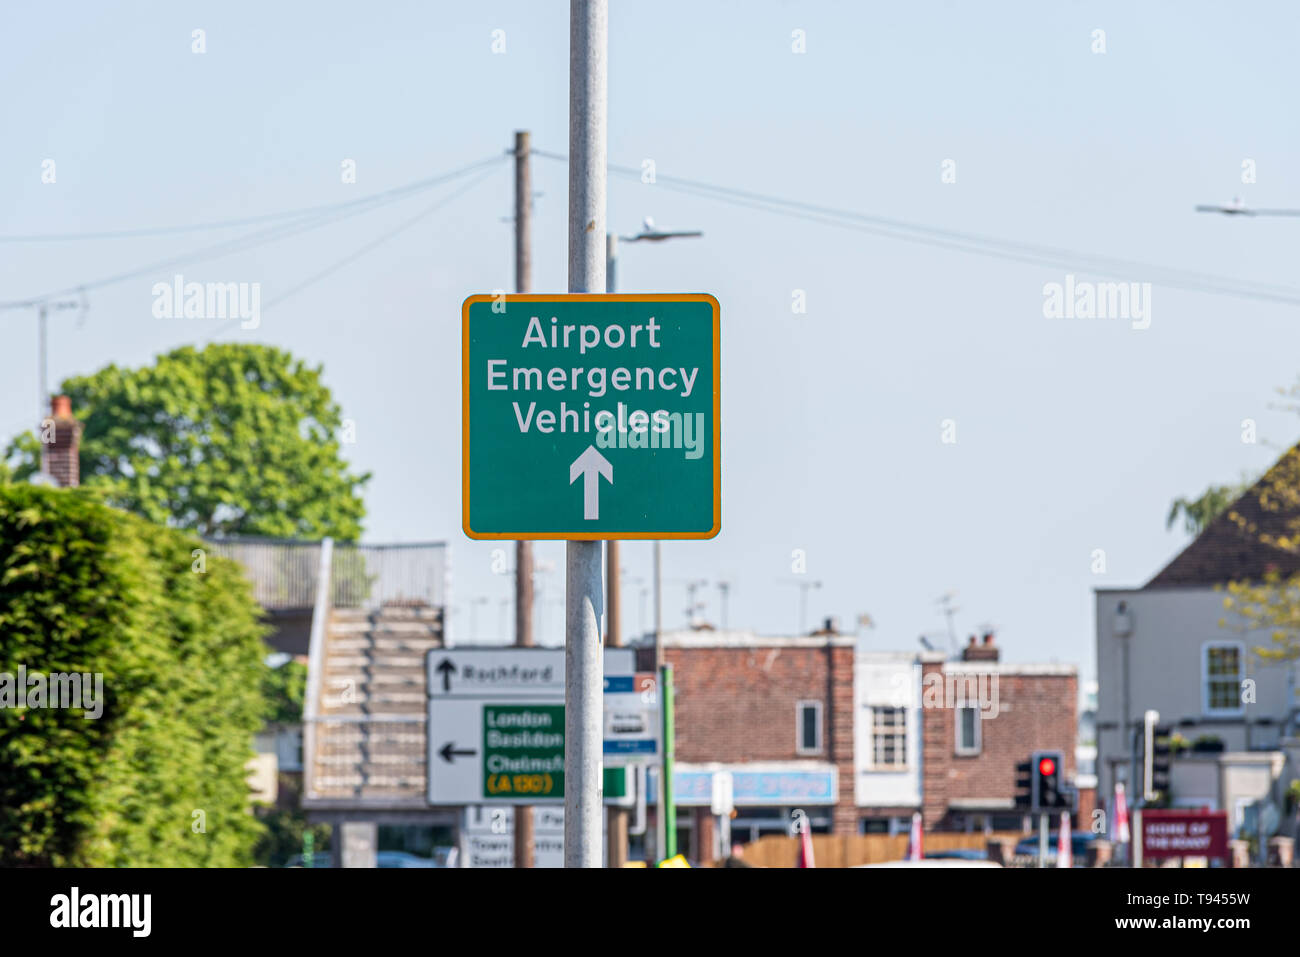 Airport emergency vehicles sign for London Southend Airport, Essex, UK approaching The Bell junction of A127 Prince Avenue, Westcliff on Sea. Arrow - Stock Image